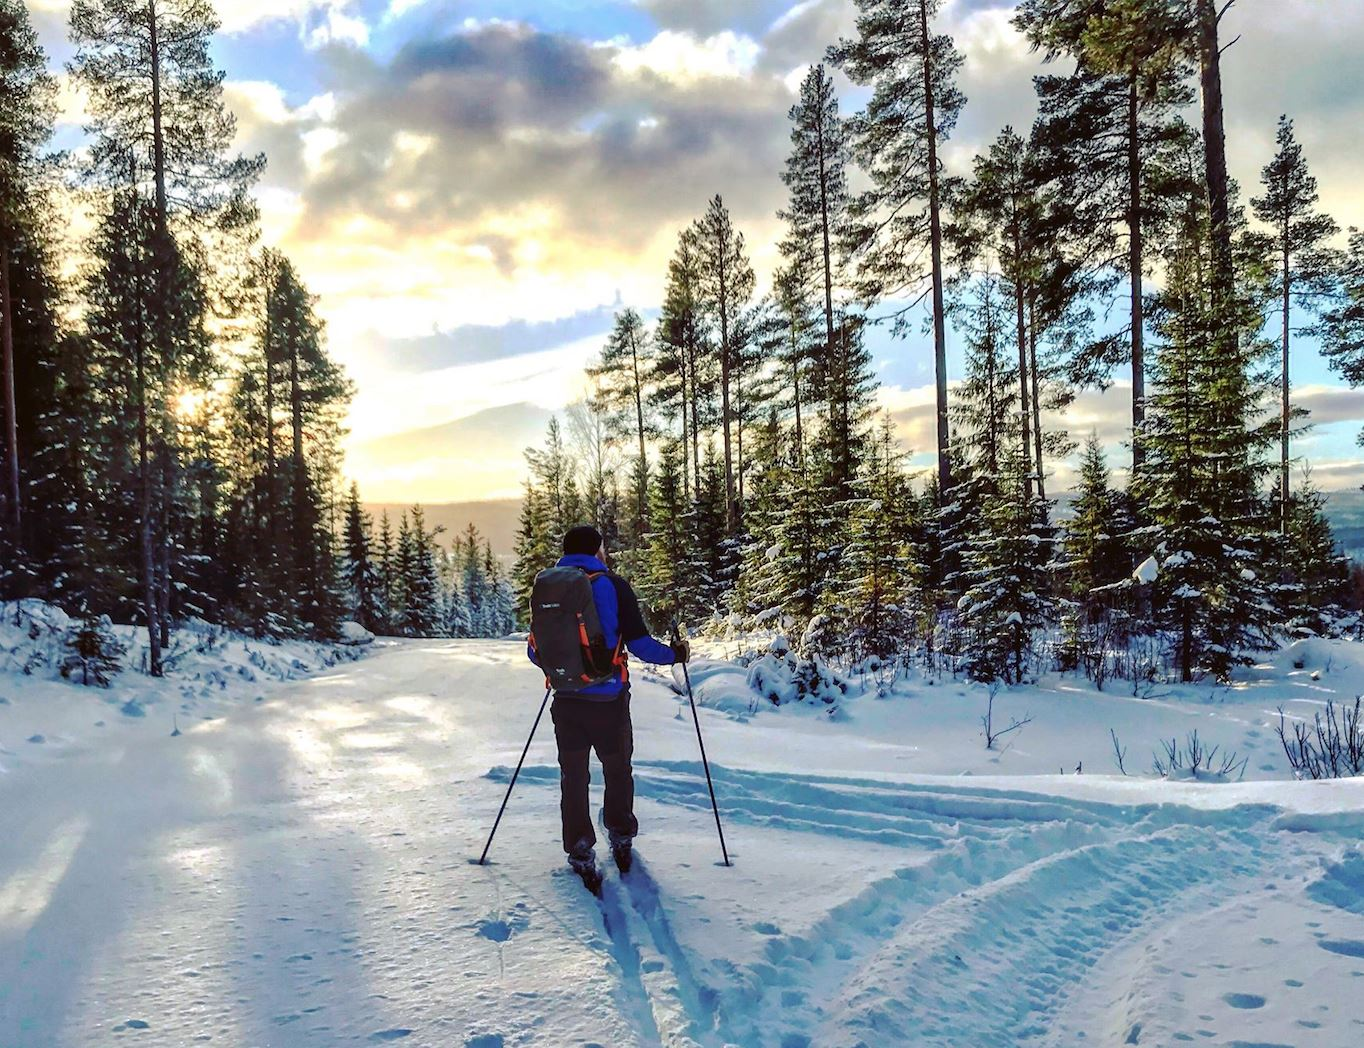 Yogaretreat and touring skis